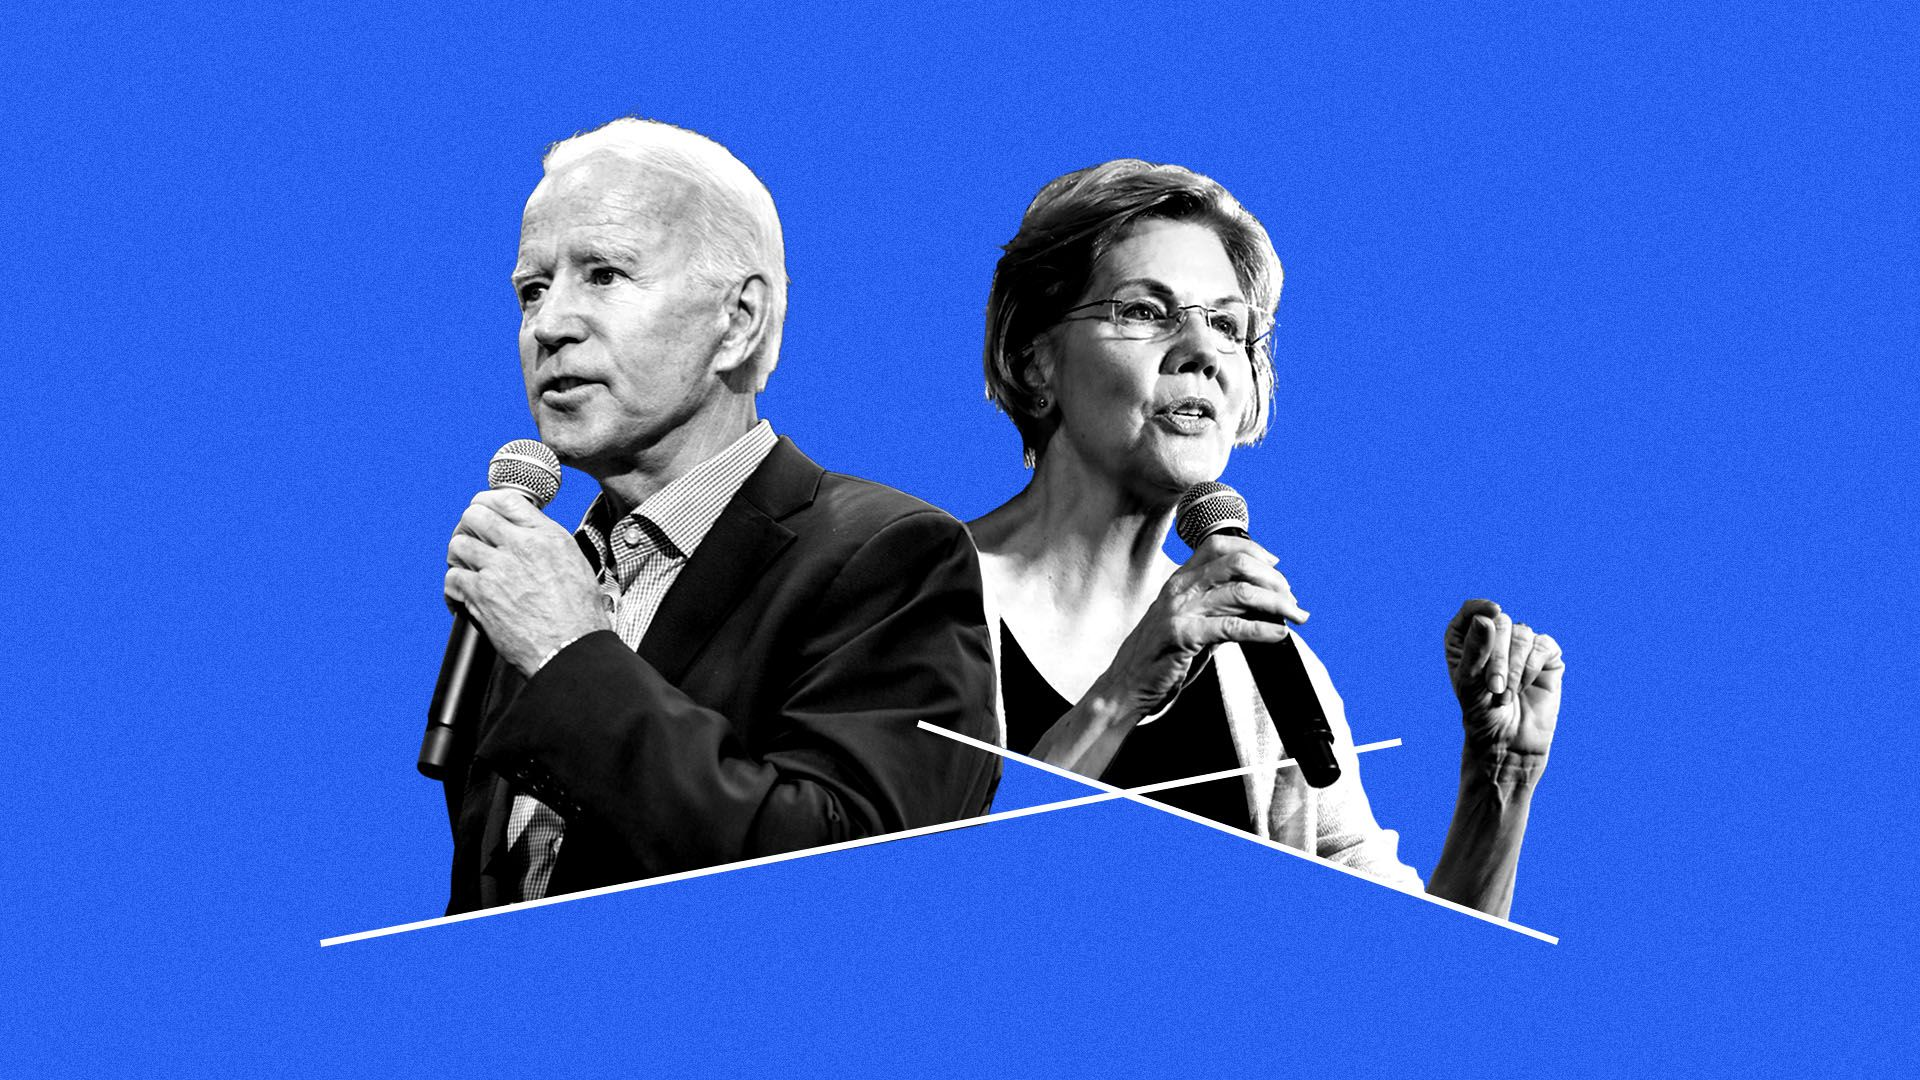 Debate night: Biden, Warren, Sanders and the fight for frontrunner